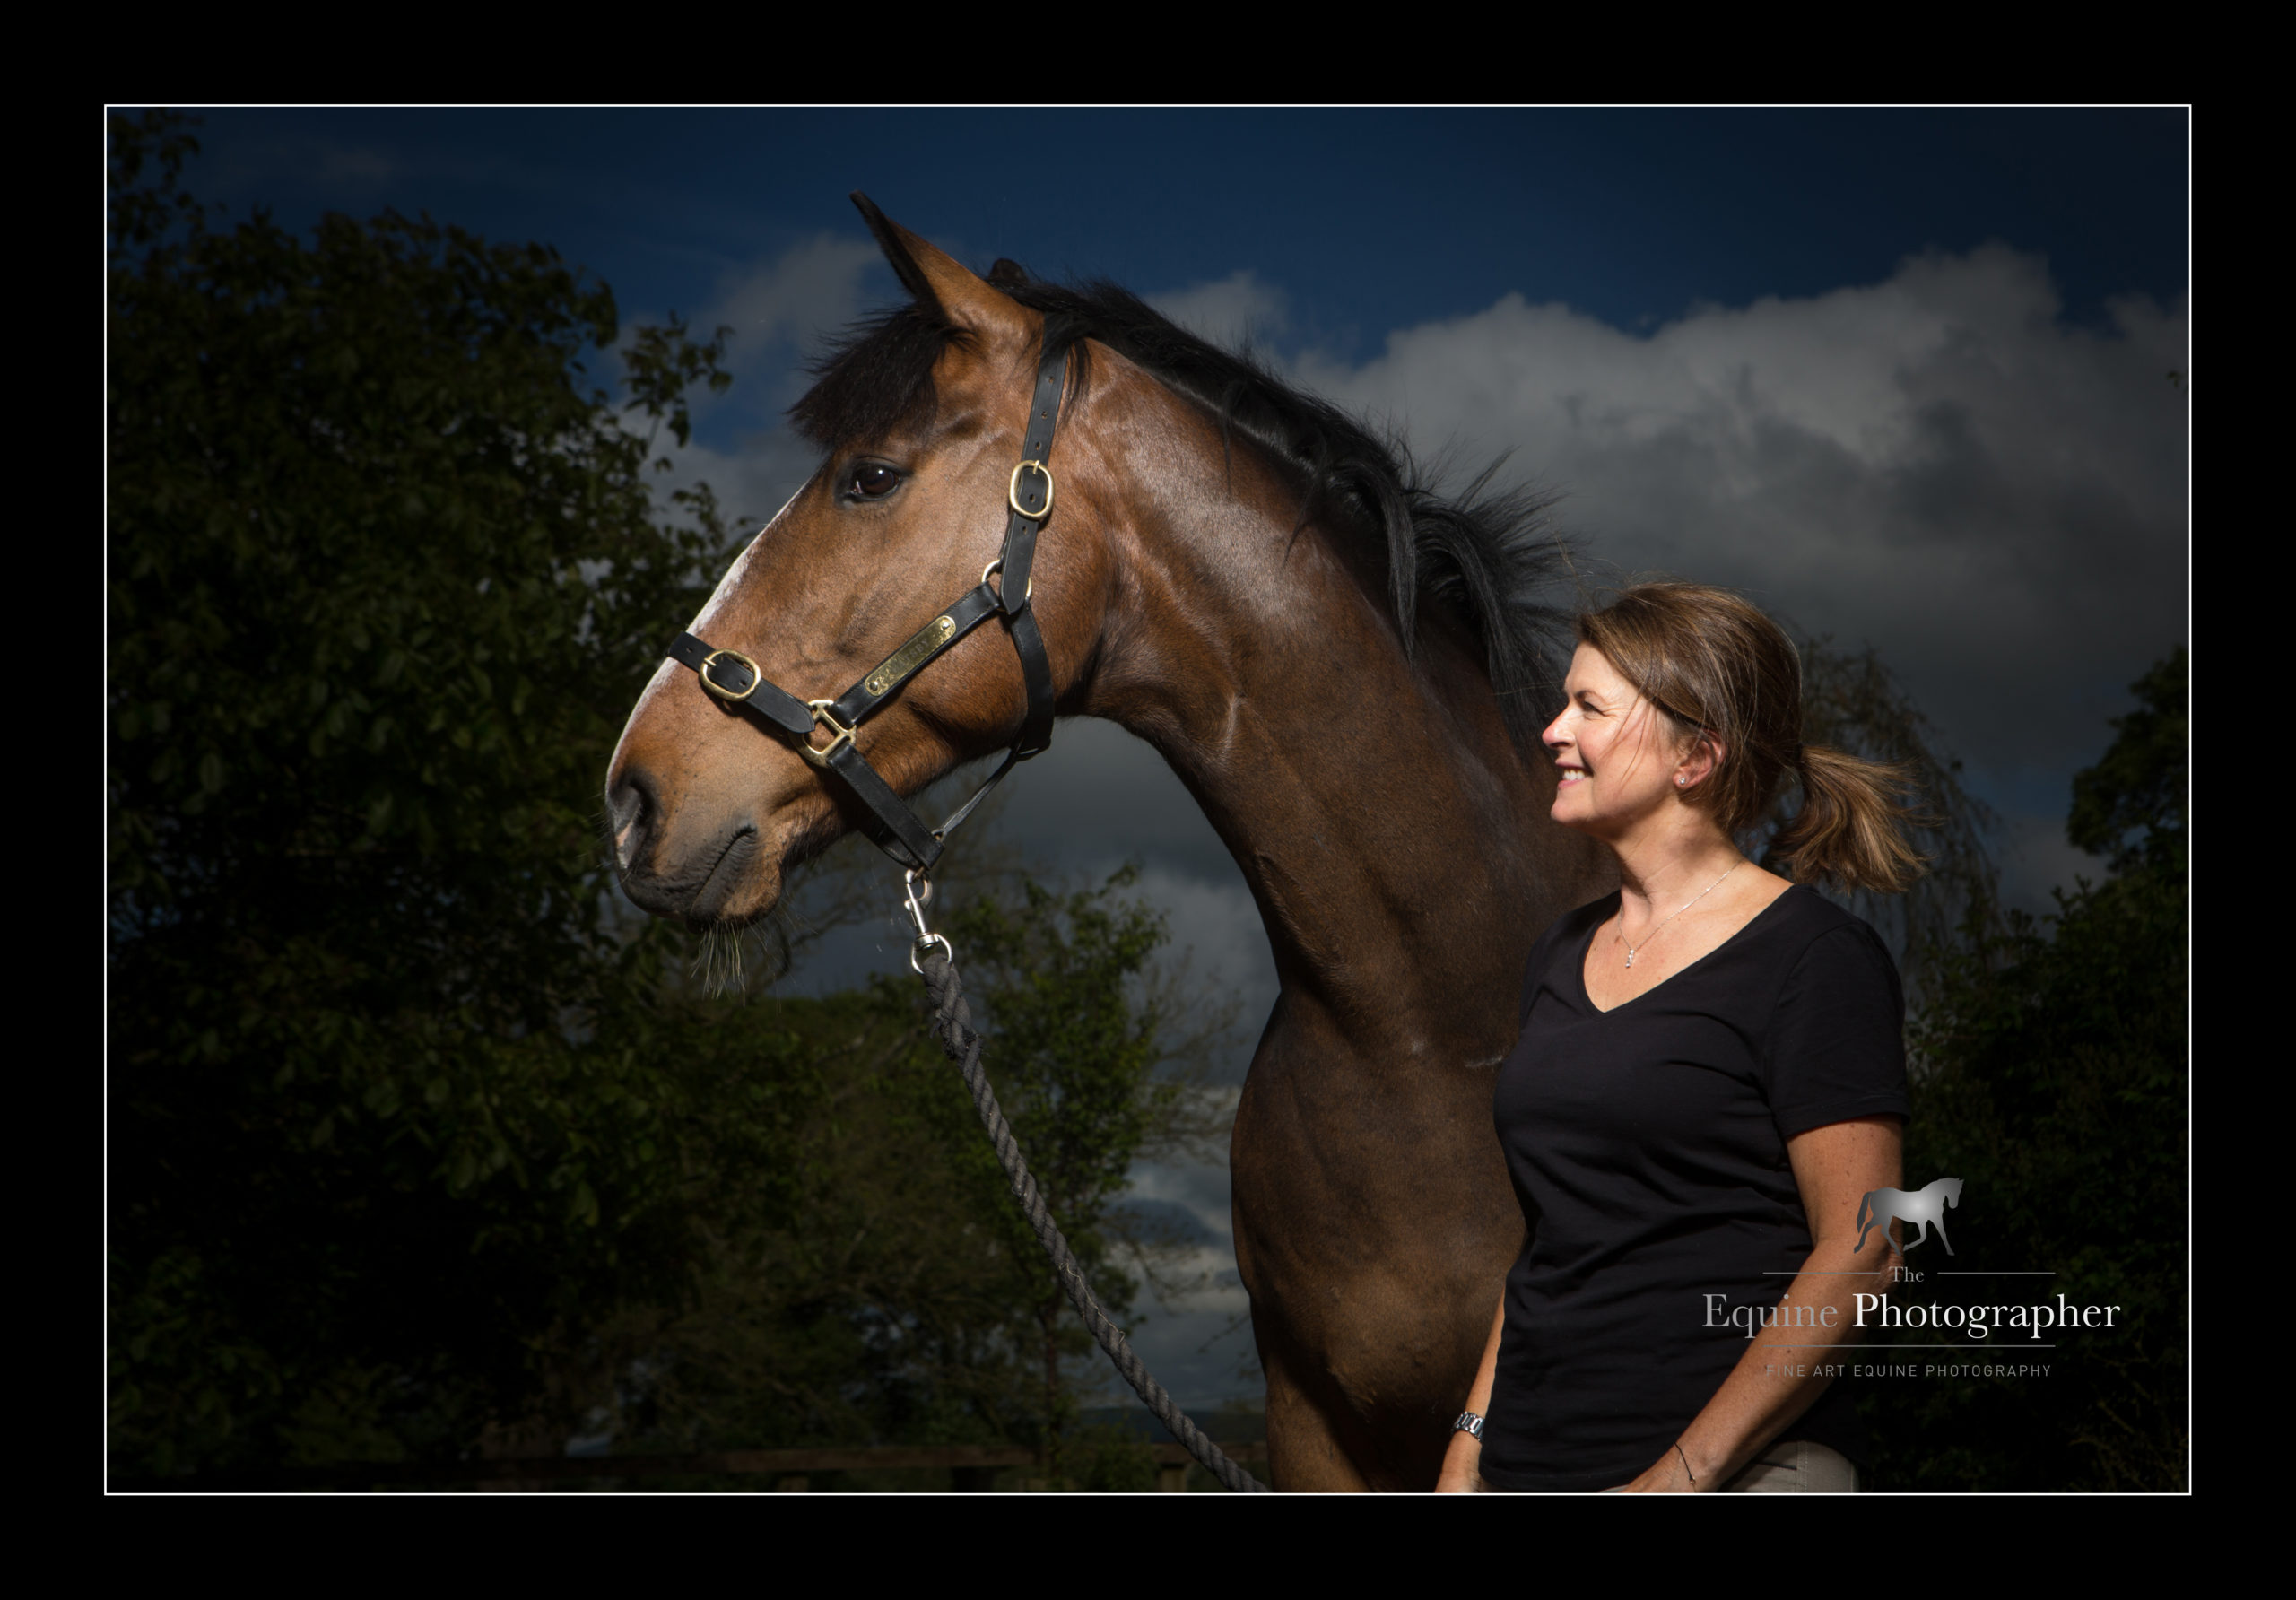 Photo Martina Regan | The Equine Photographer.ie